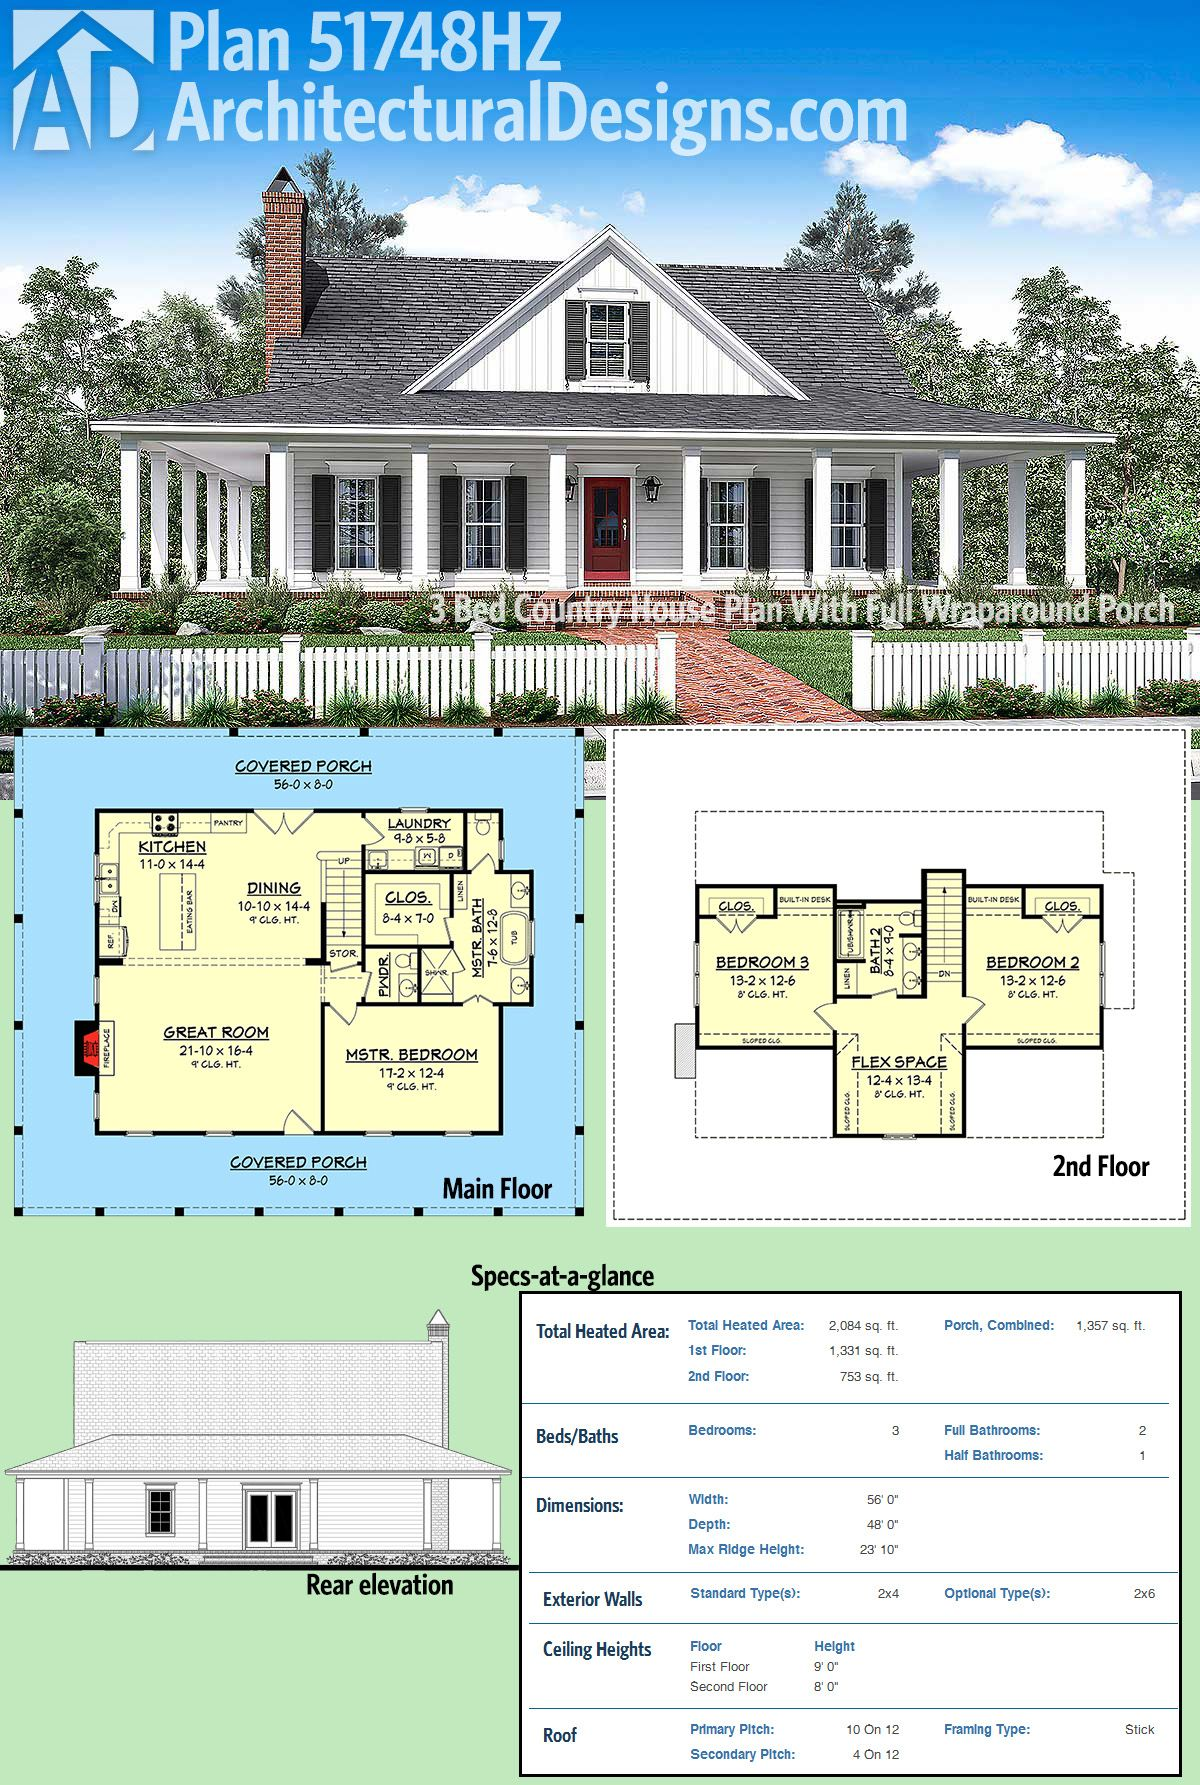 Plan HZ 3 Bed Country House Plan With Full Wraparound Porch